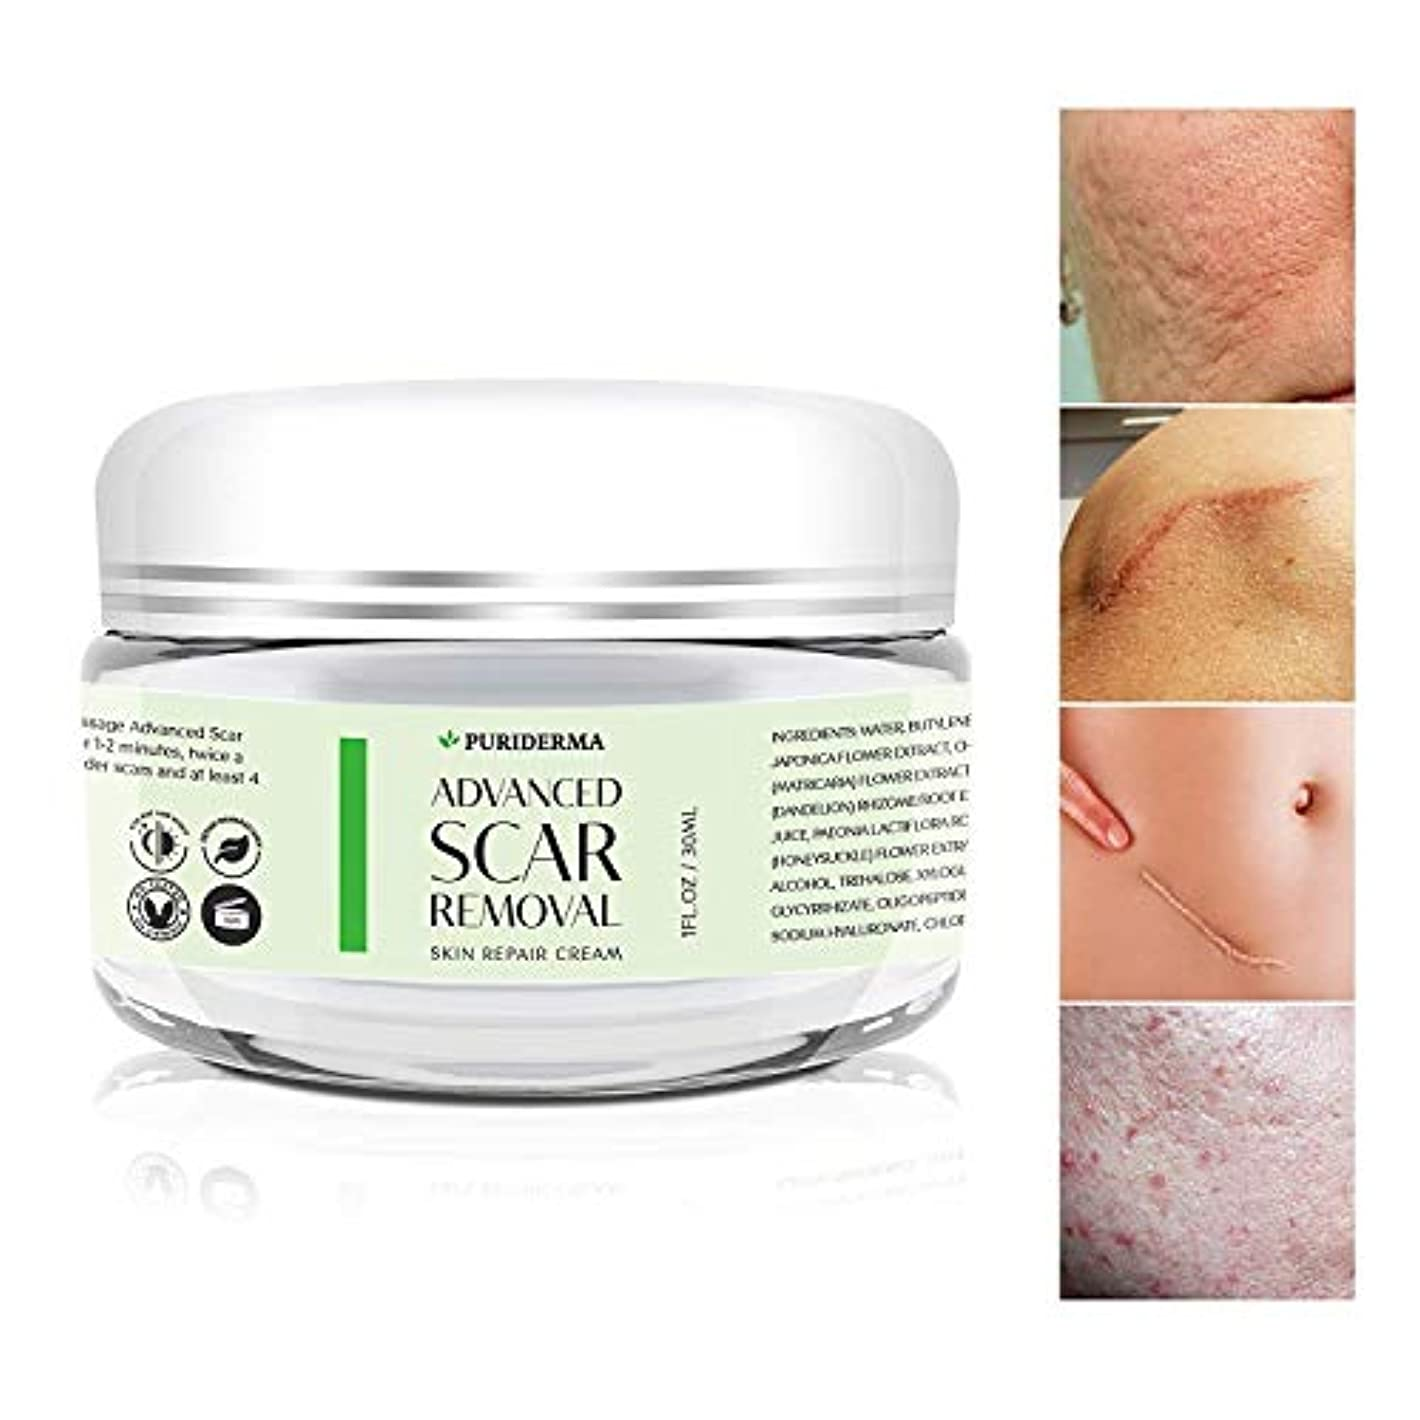 遺産ブレーキチューブPuriderma 社 の Advanced Scar Removal Cream (30 ml) 妊娠線 や 傷跡 修復に Advanced Treatment for Face & Body, Old & New Scars...